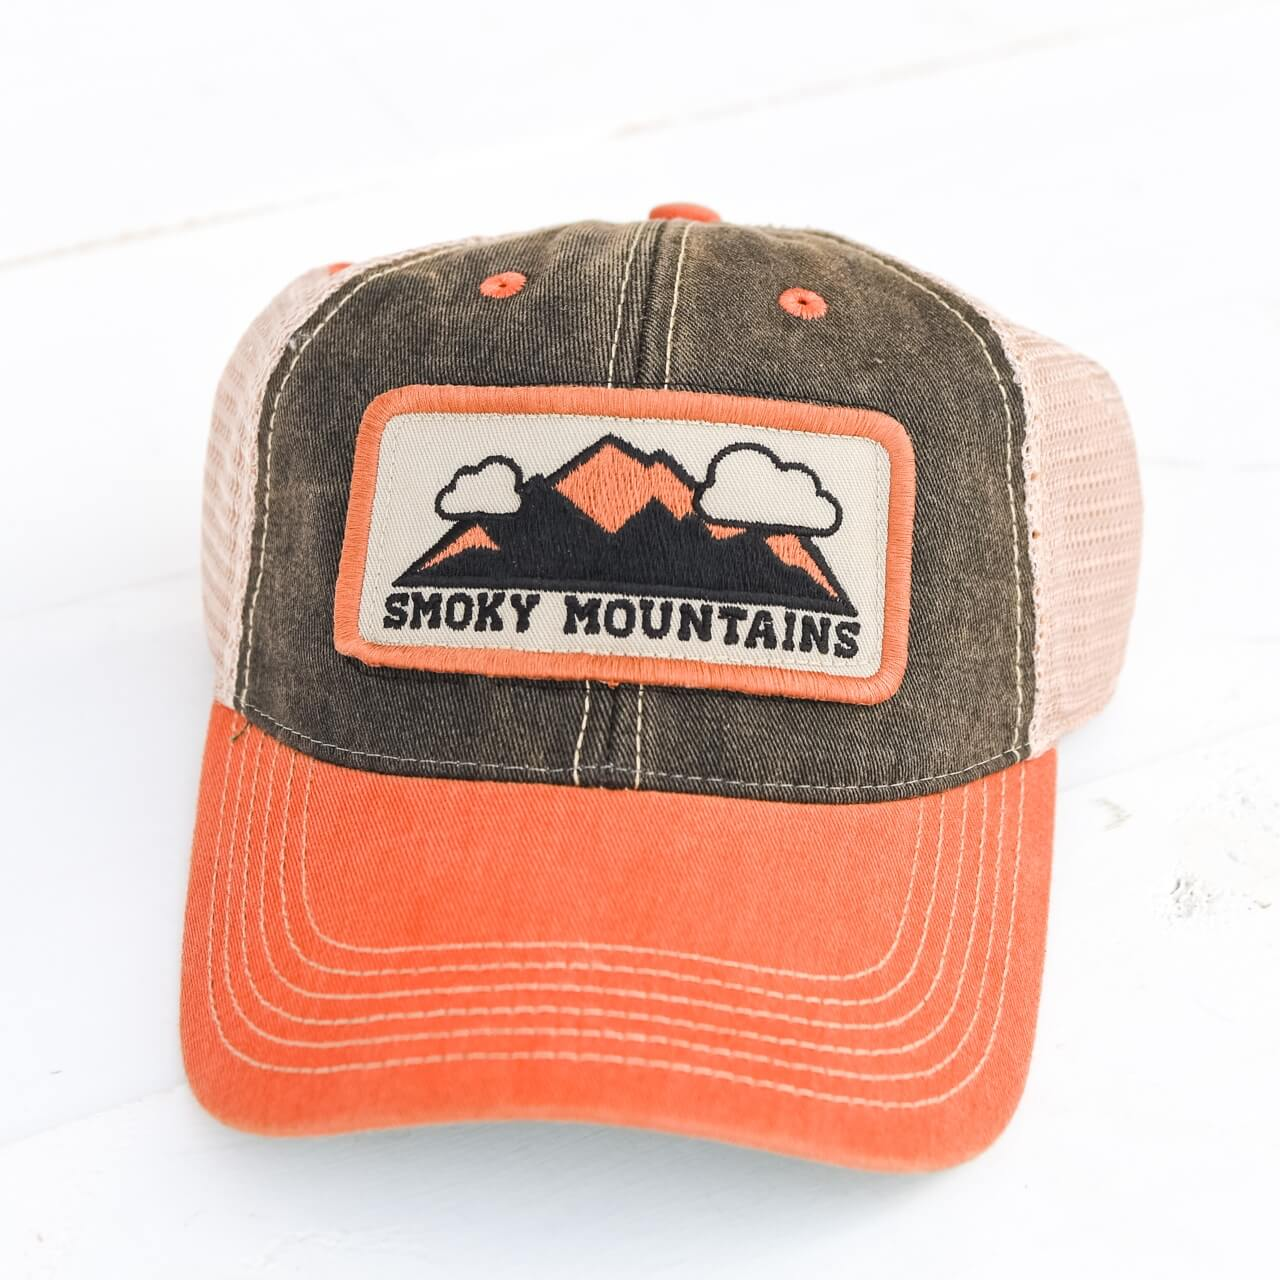 8c0a8c74fdc Smoky Mountains Trucker Hat